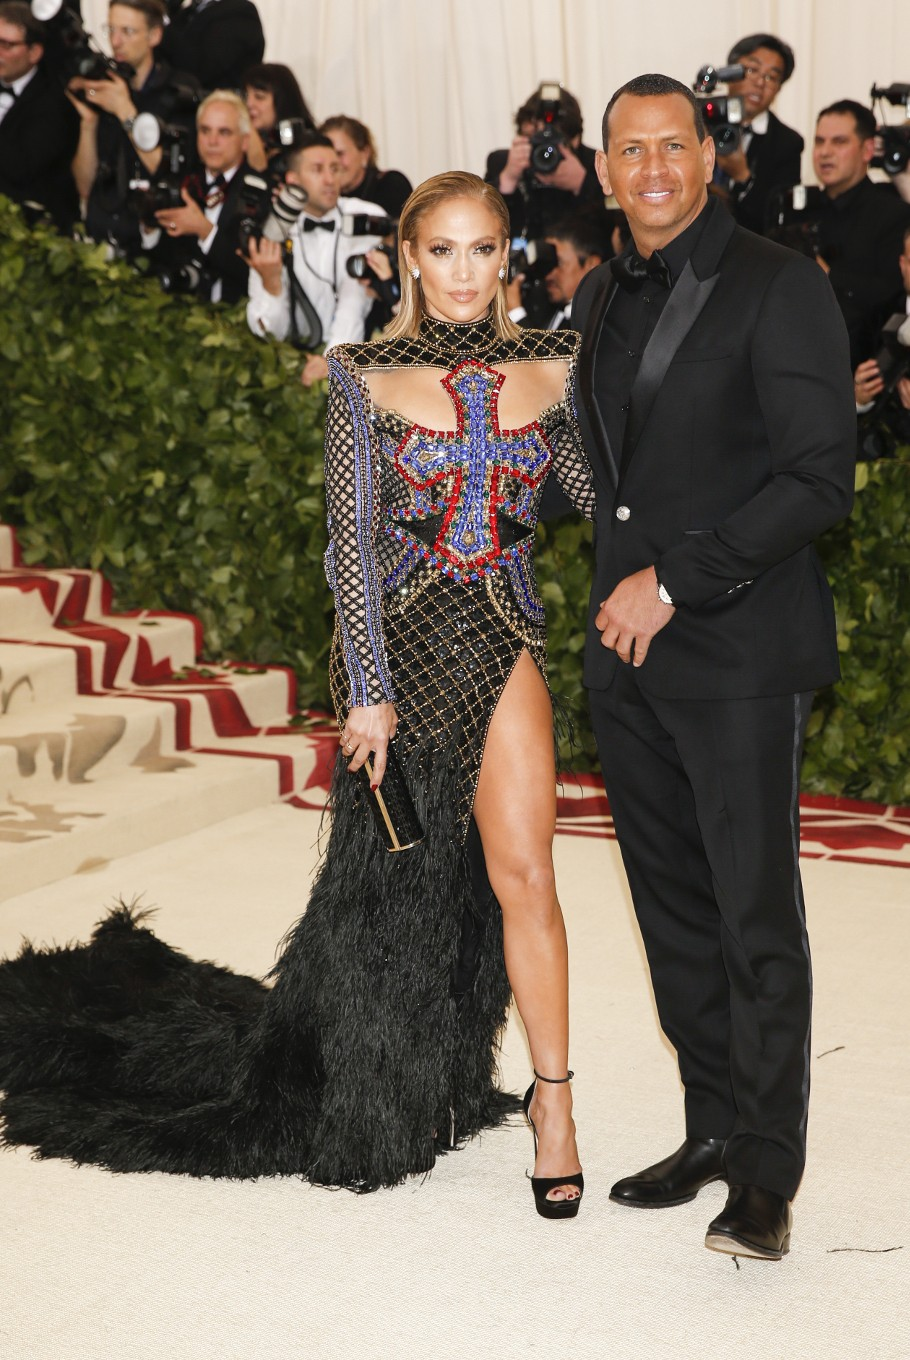 Singer Jennifer Lopez and Alex Rodriguez arrive at the Metropolitan Museum of Art Costume Institute Gala (Met Gala) to celebrate the opening of 'Heavenly Bodies: Fashion and the Catholic Imagination' in the Manhattan borough of New York, U.S., May 7, 2018.